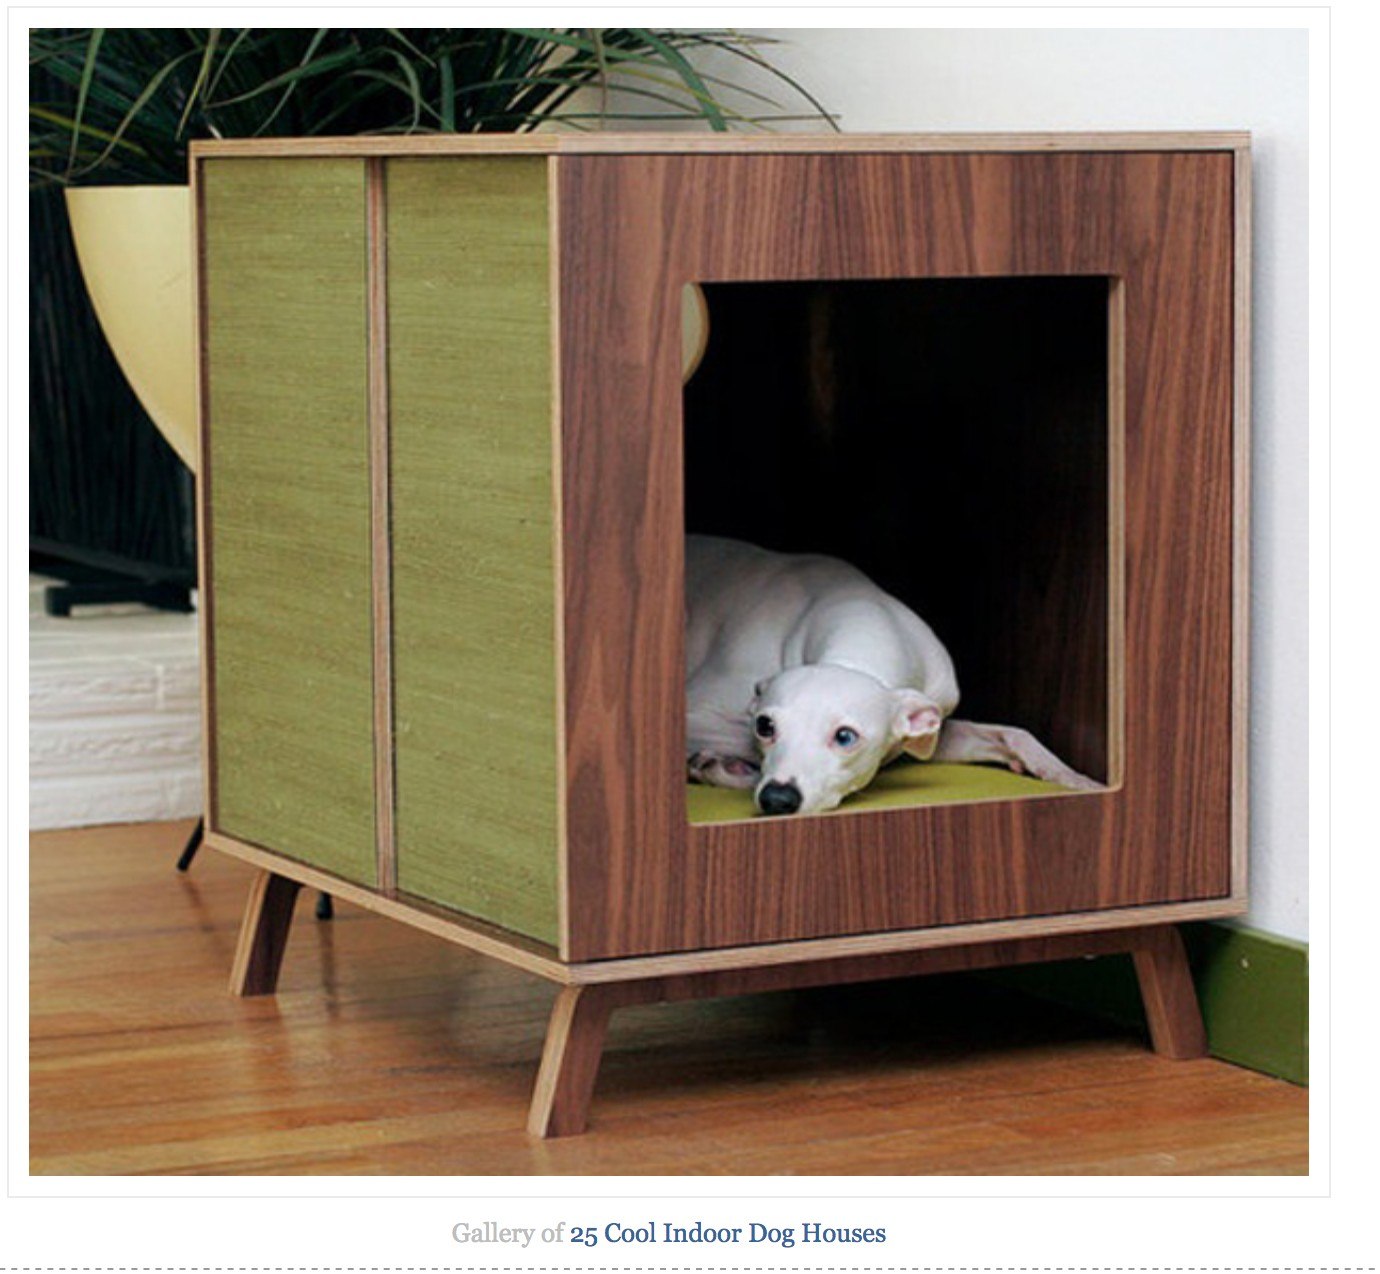 Fancy dog crates furniture Narrow Dog Stylish Dog Crates Adamdavisco Designer Dog Crates Furniture Ideas On Foter